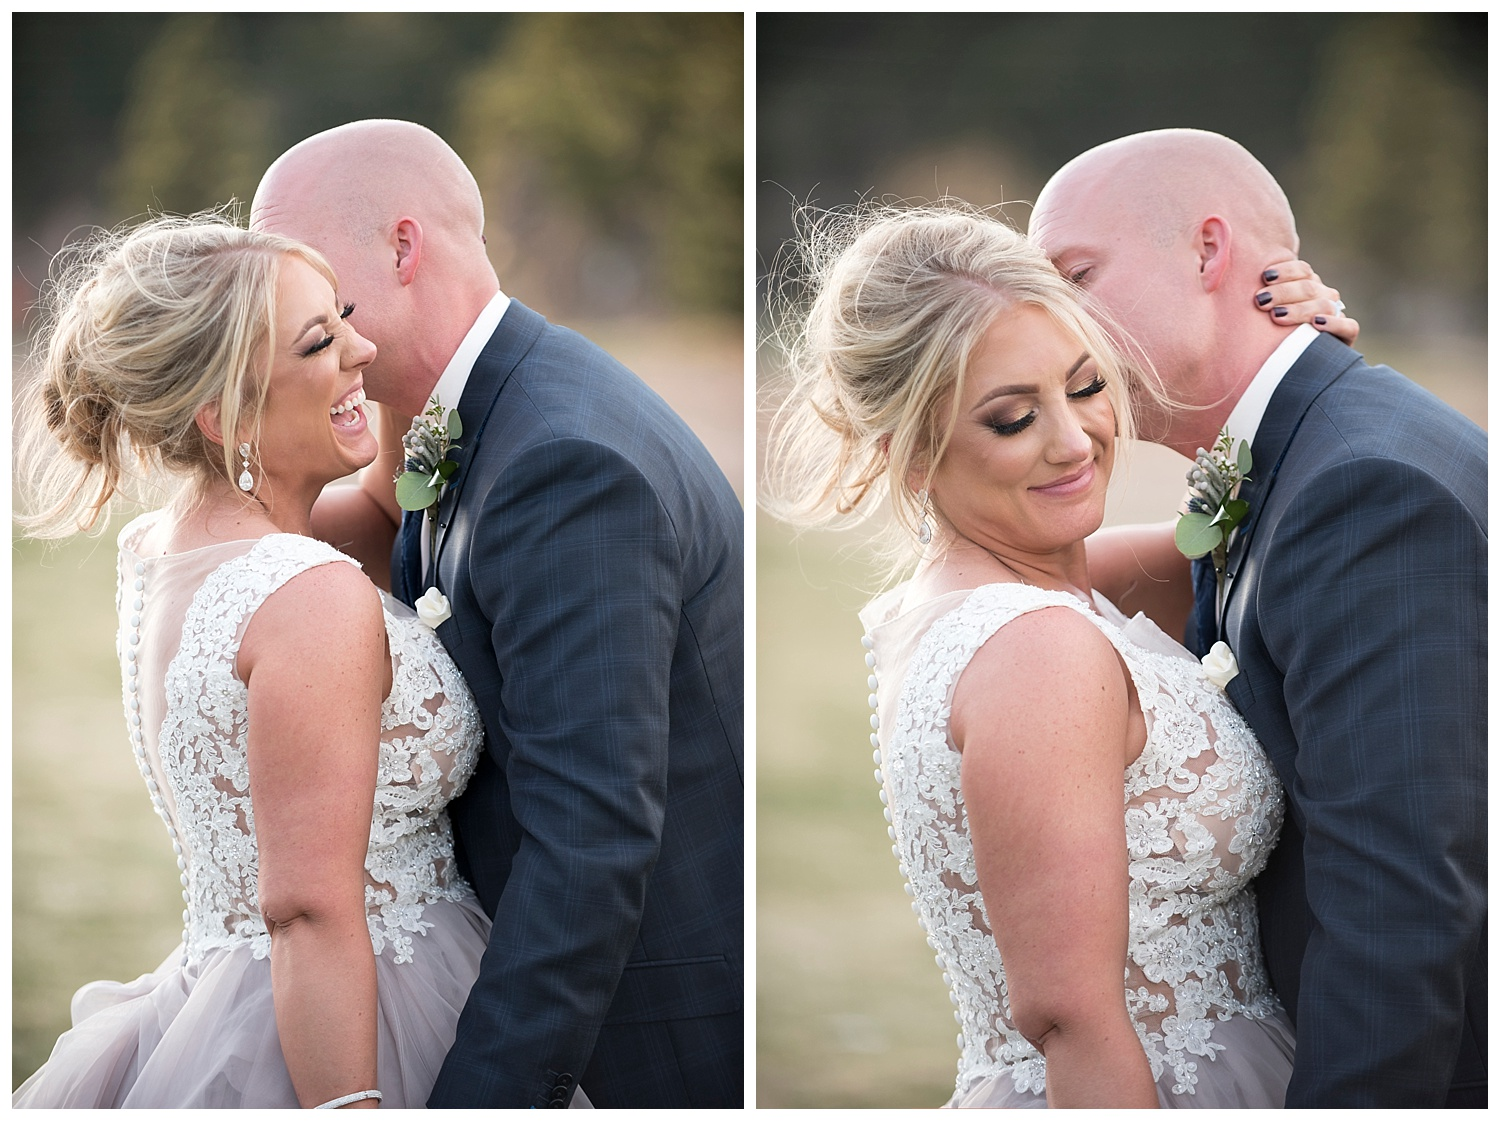 Evergreen_Lake_House_Colorado_Wedding_Photographer_Apollo_Fields_Photography_161.jpg